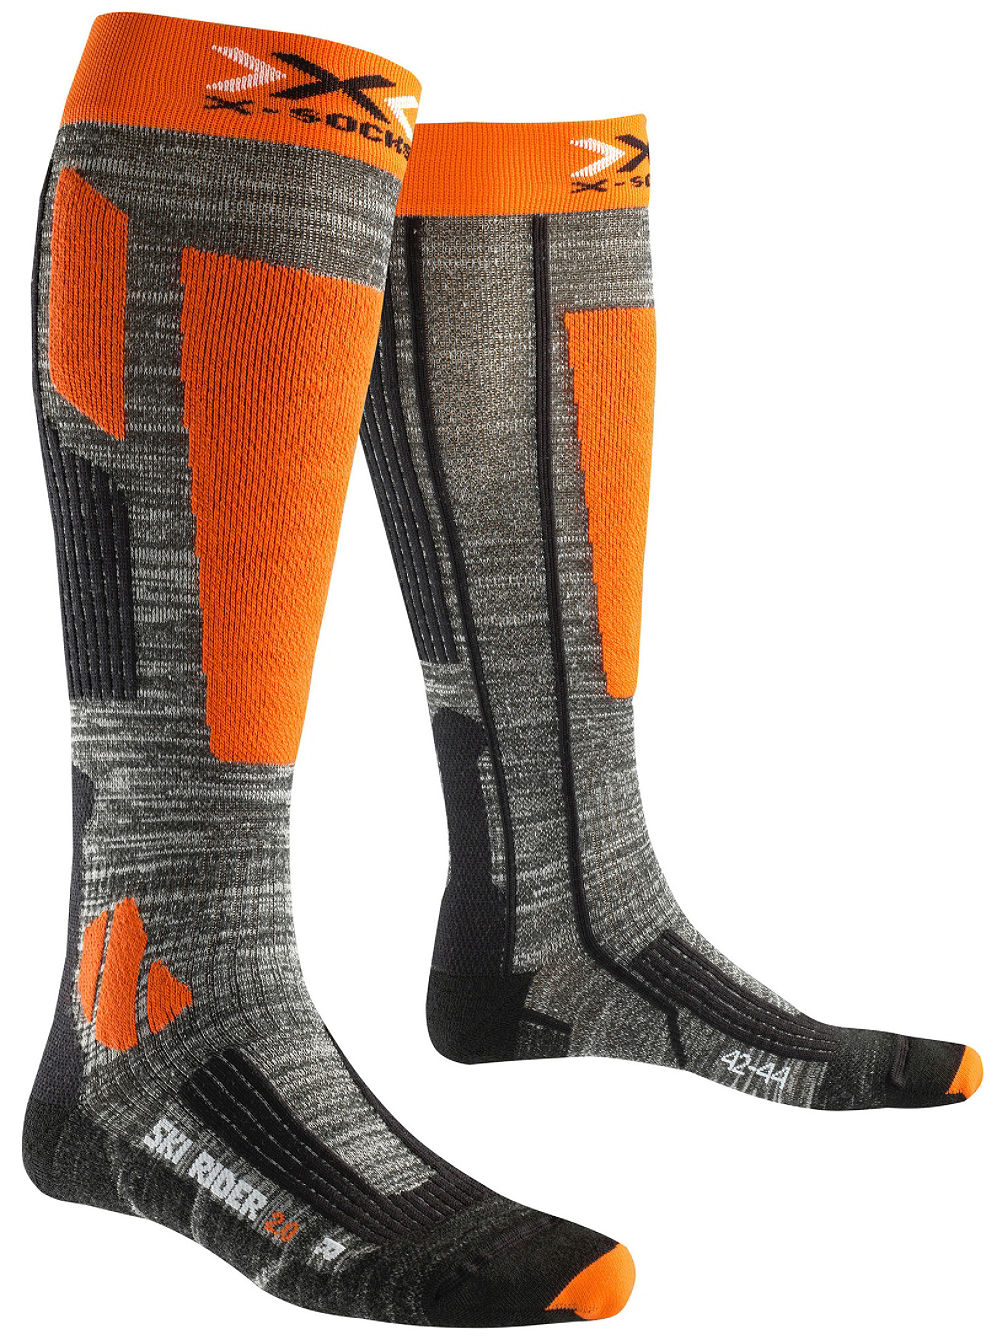 Ski Rider 2.0 Tech Socks